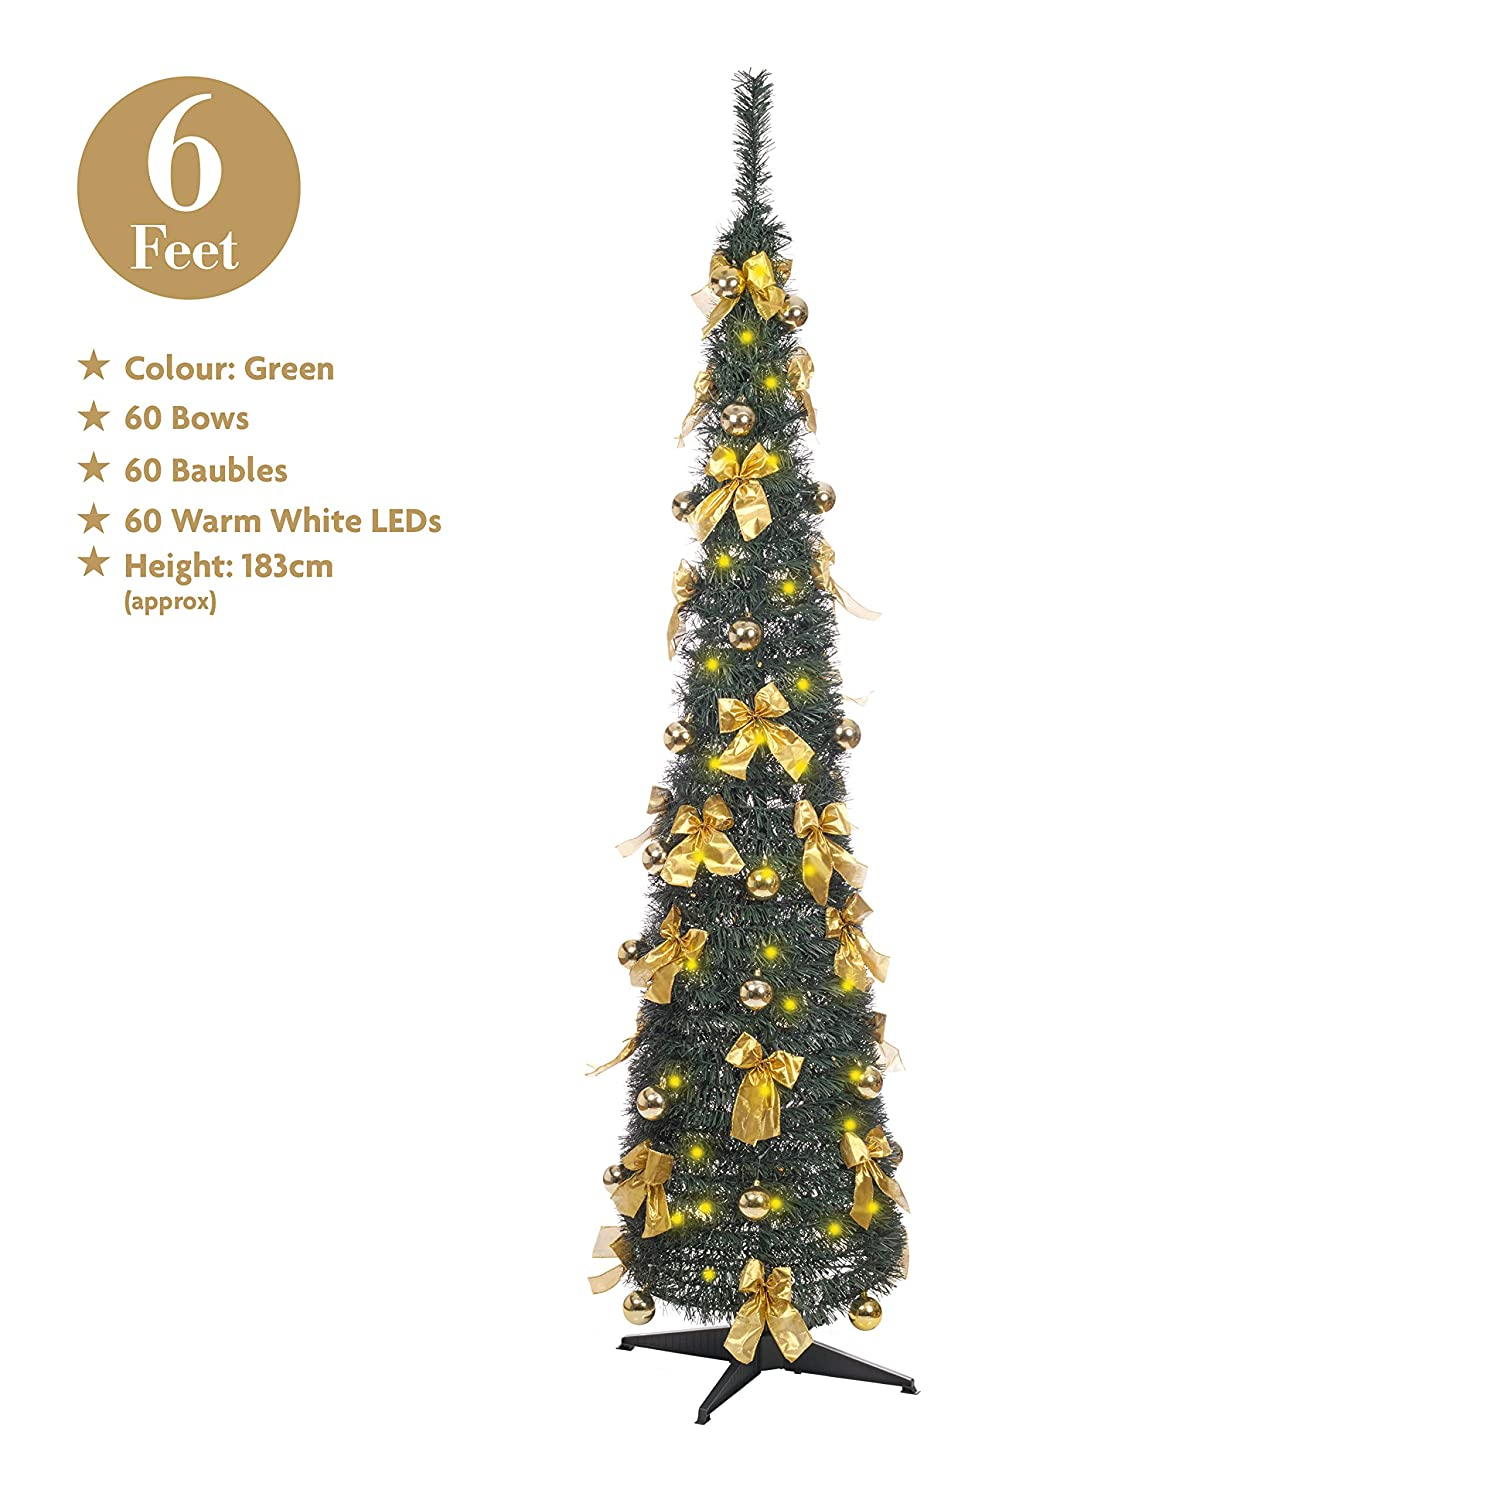 Green Pop Up 6ft Xmas Tree 60 LED Bows Baubles Pre-Decorated Pre-Lit ...